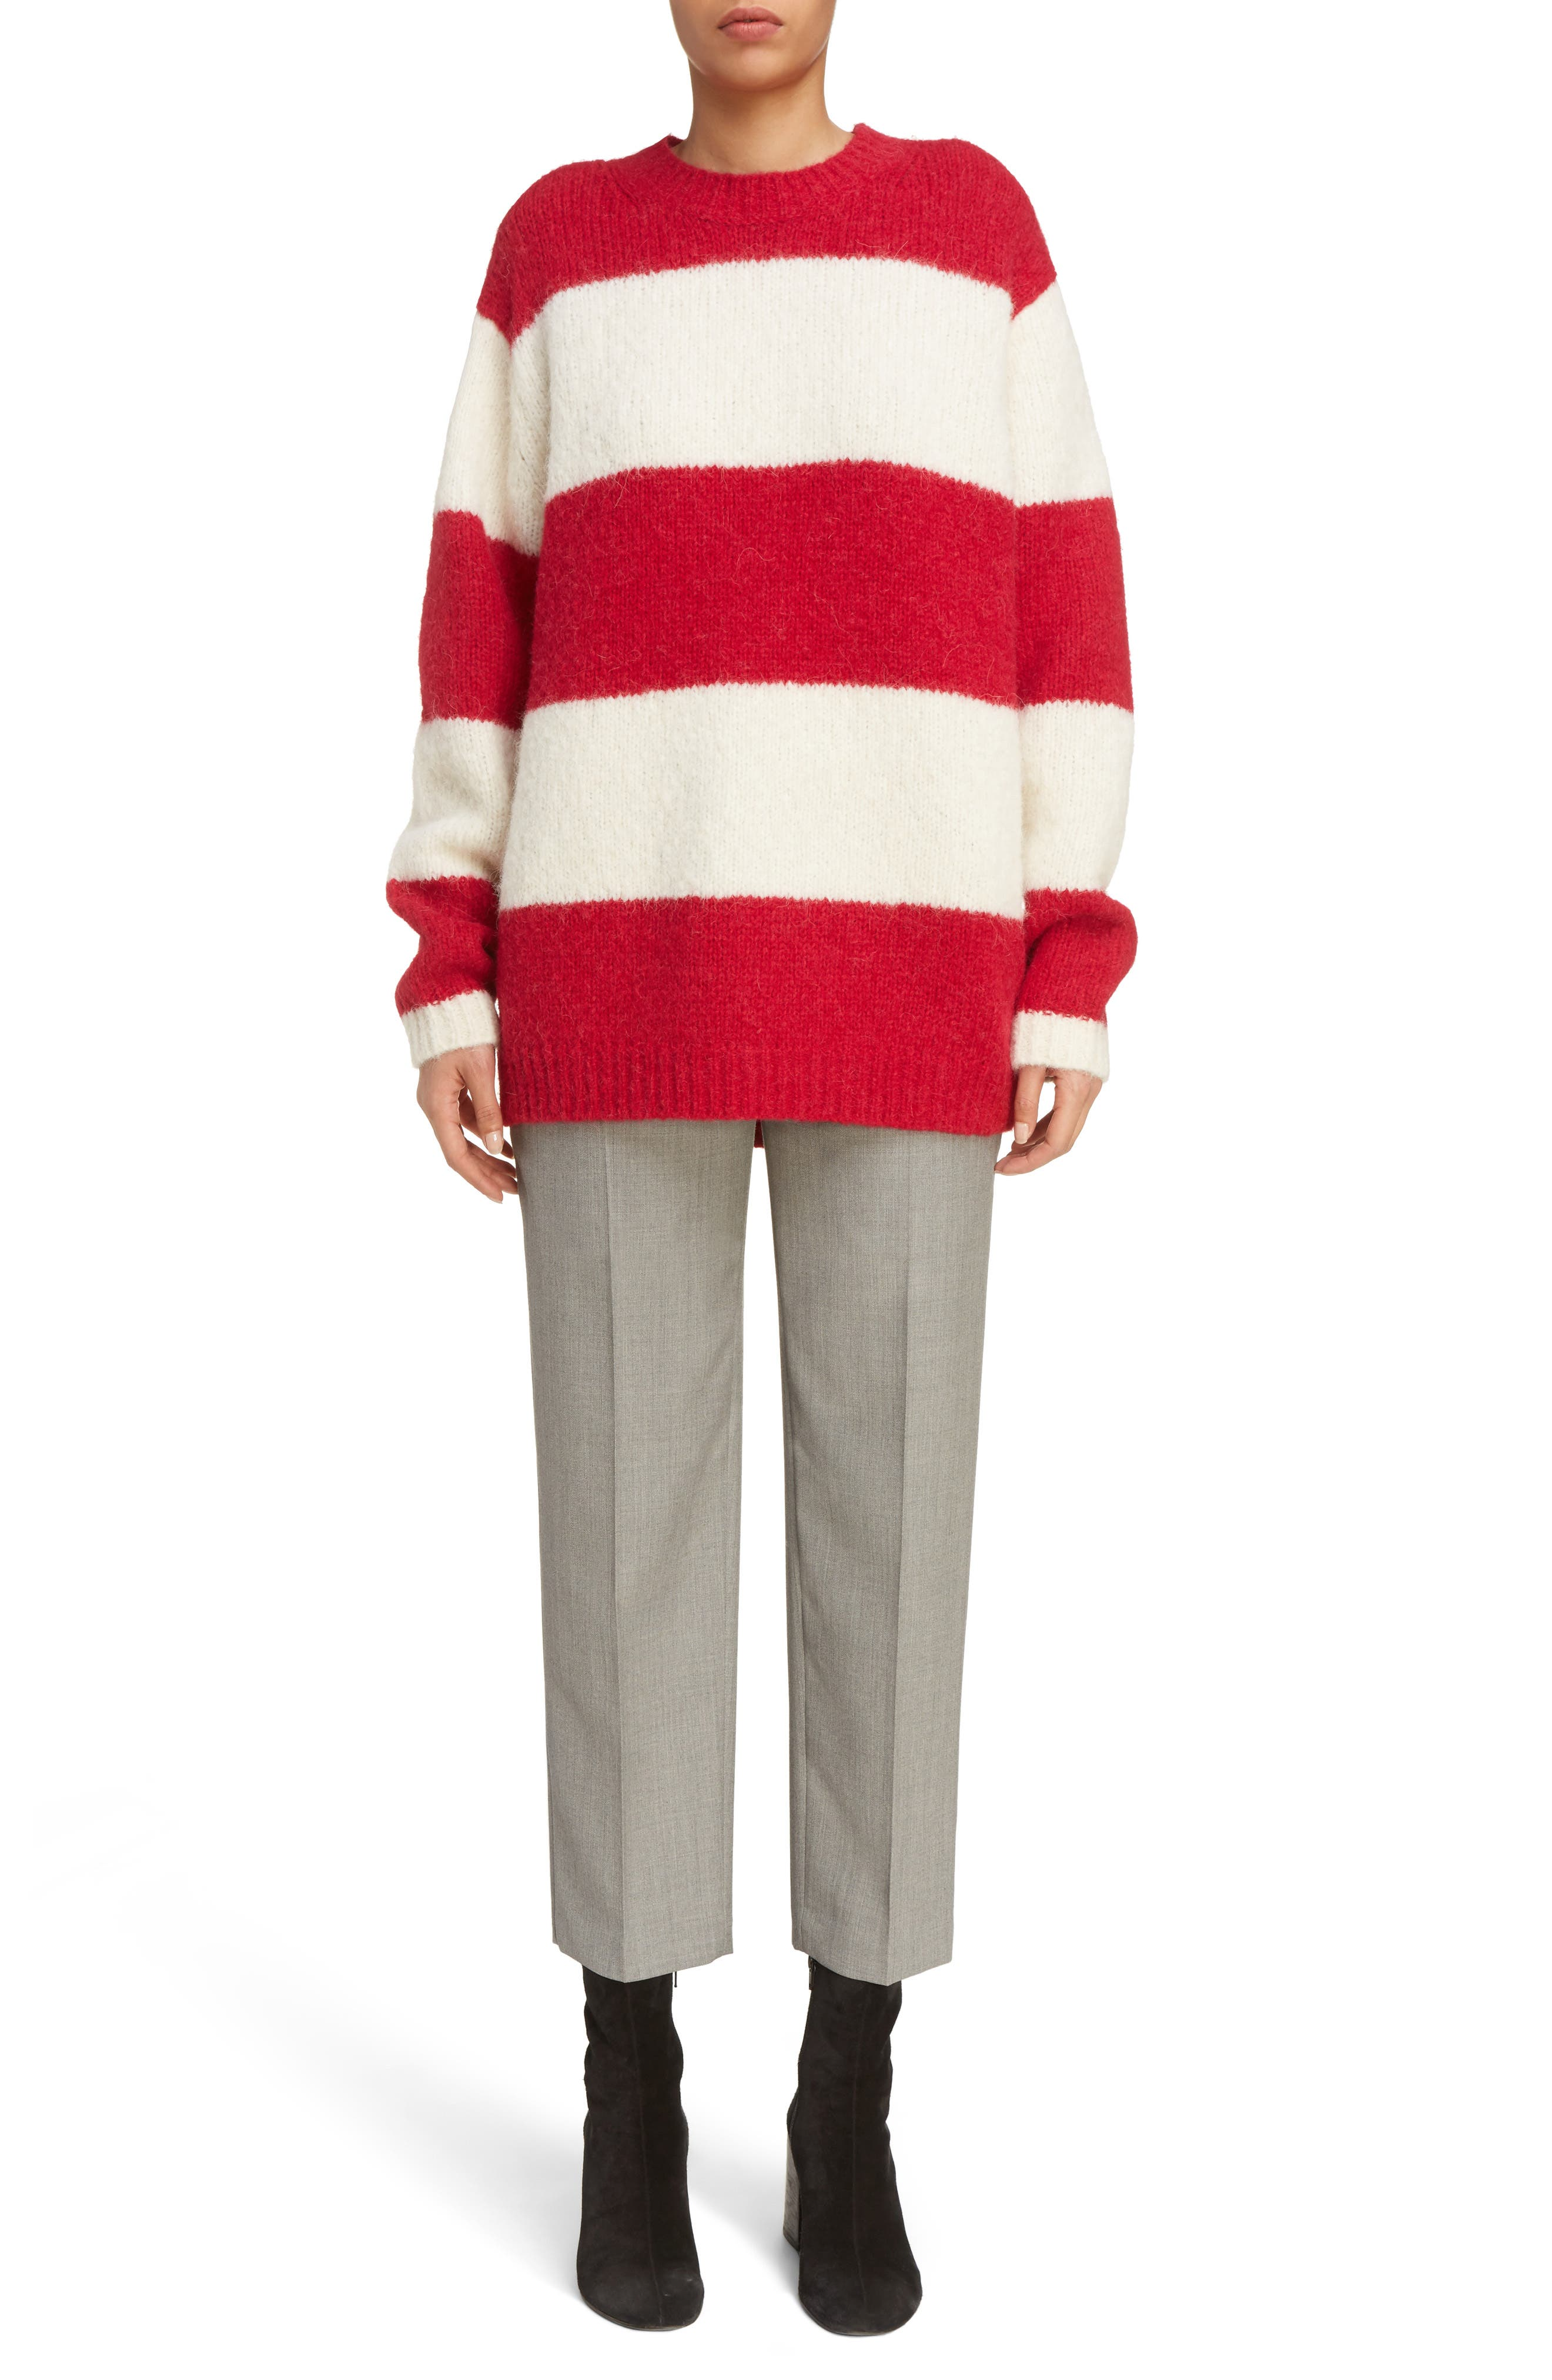 Albah Oversized Stripe Sweater,                             Main thumbnail 1, color,                             Red/ White